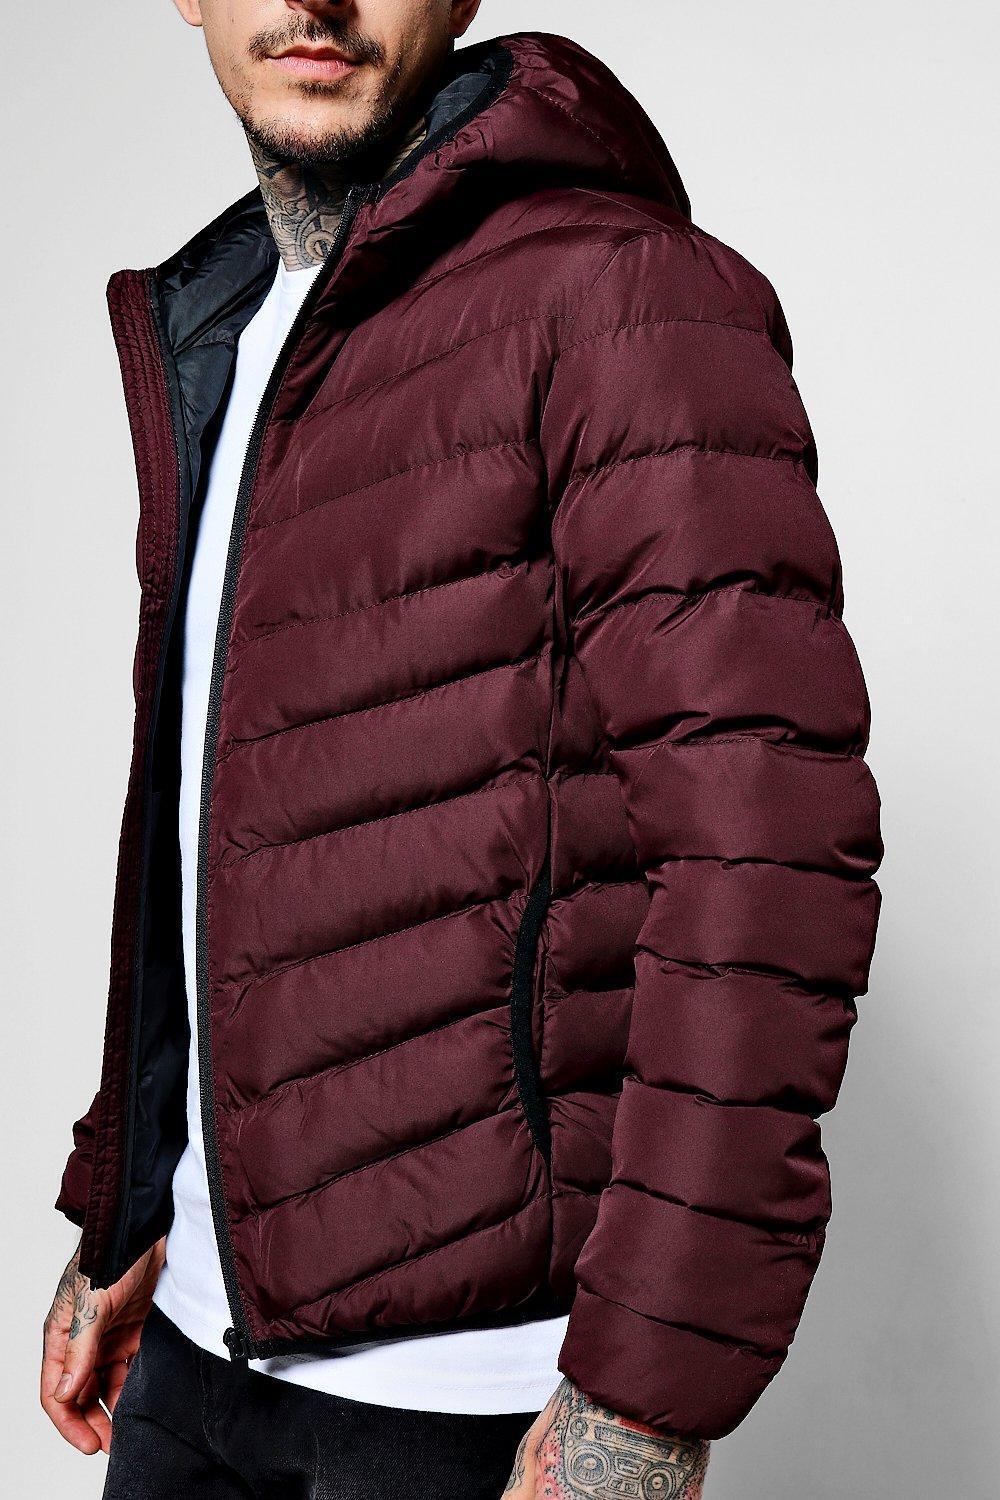 関税、送料込 Quilted Zip Through Jacket With Hood アウター